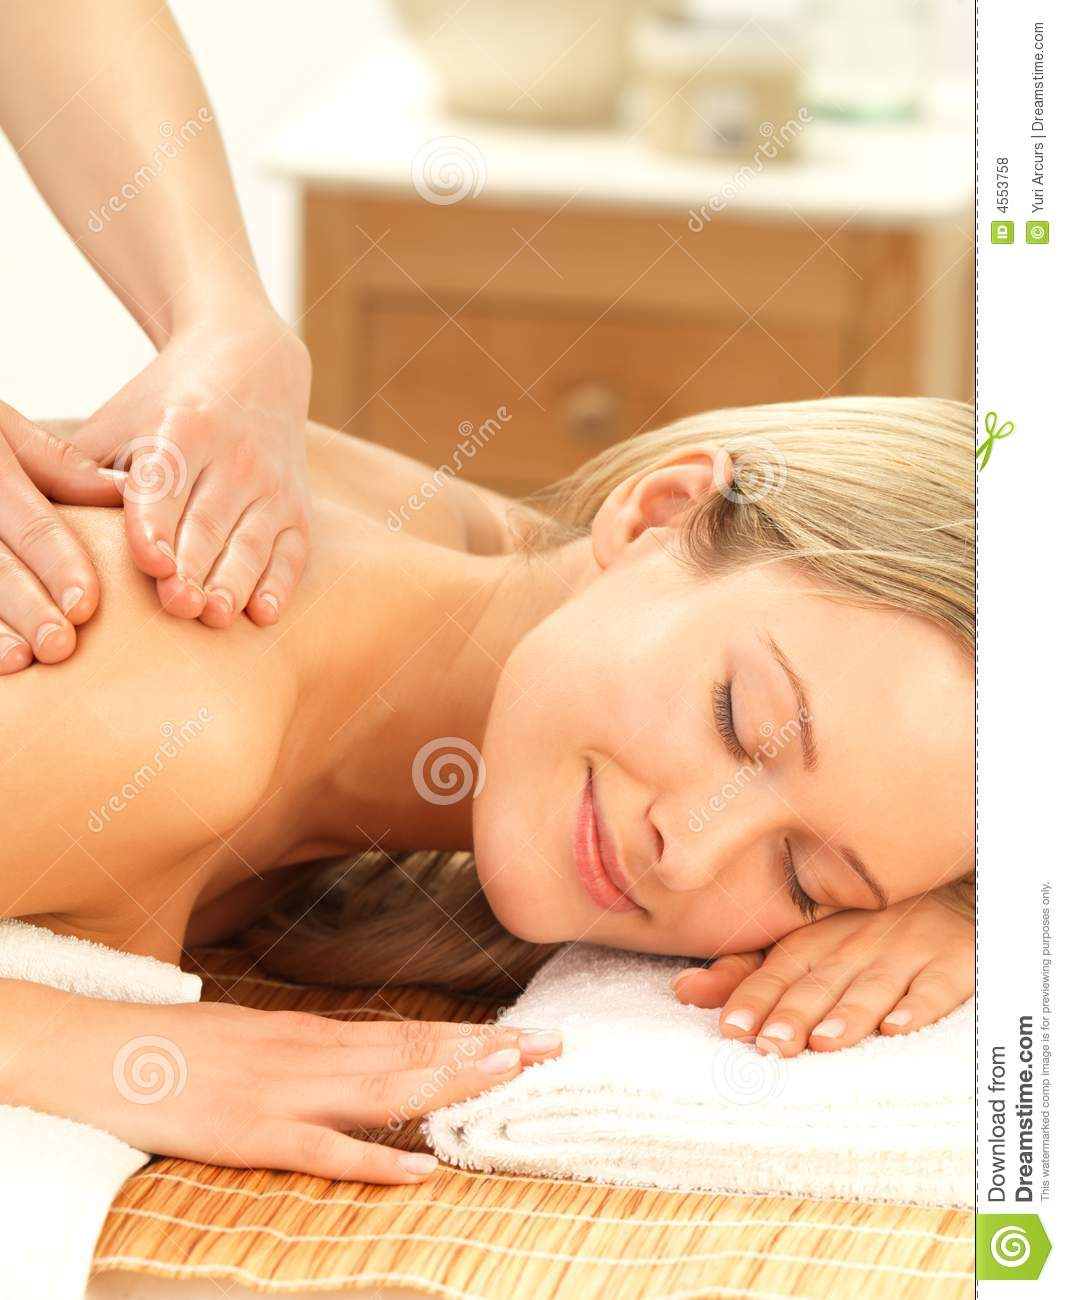 relaxing nude massage foreign affairs